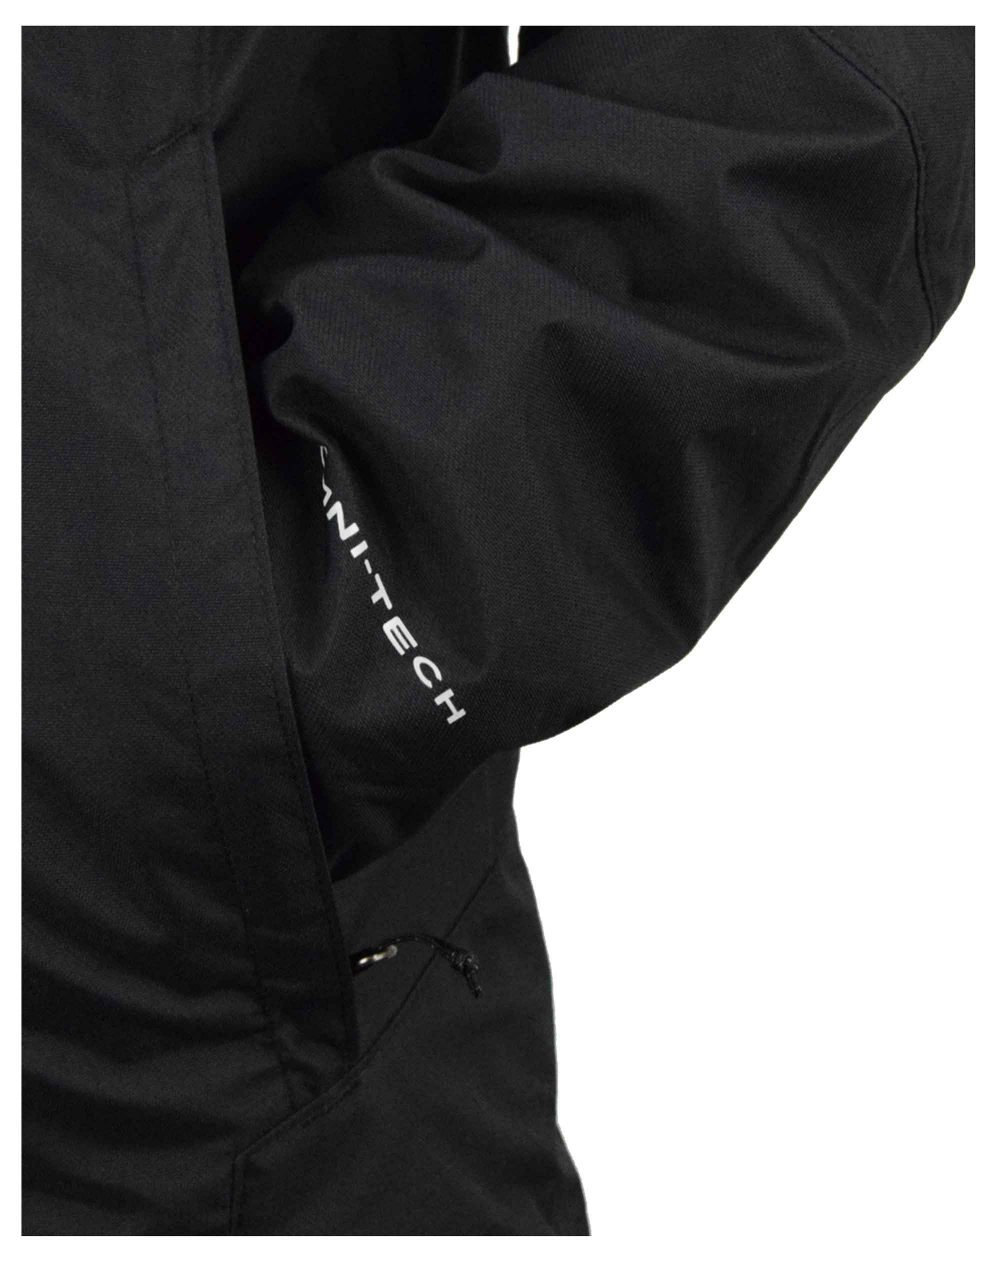 Columbia Bugaboo II Fleece Interchange Jacket (WO1273-010) Black